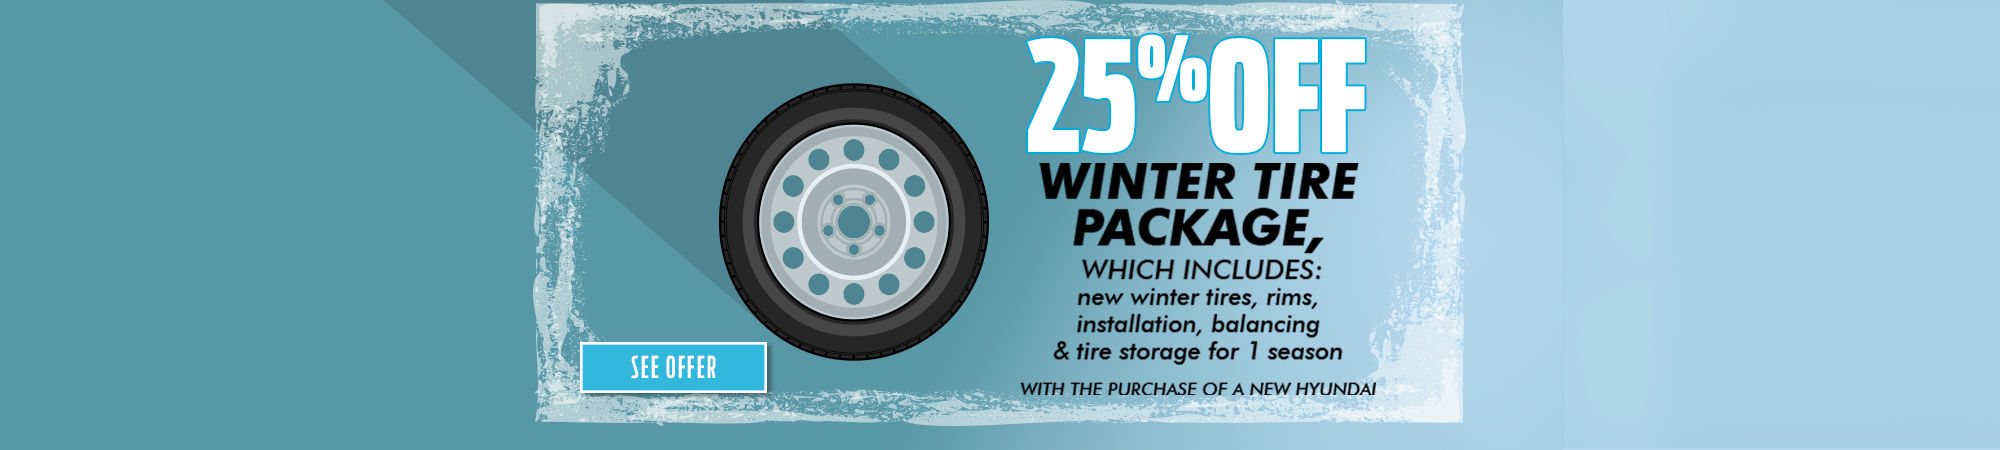 25% Off Winter Tire Package